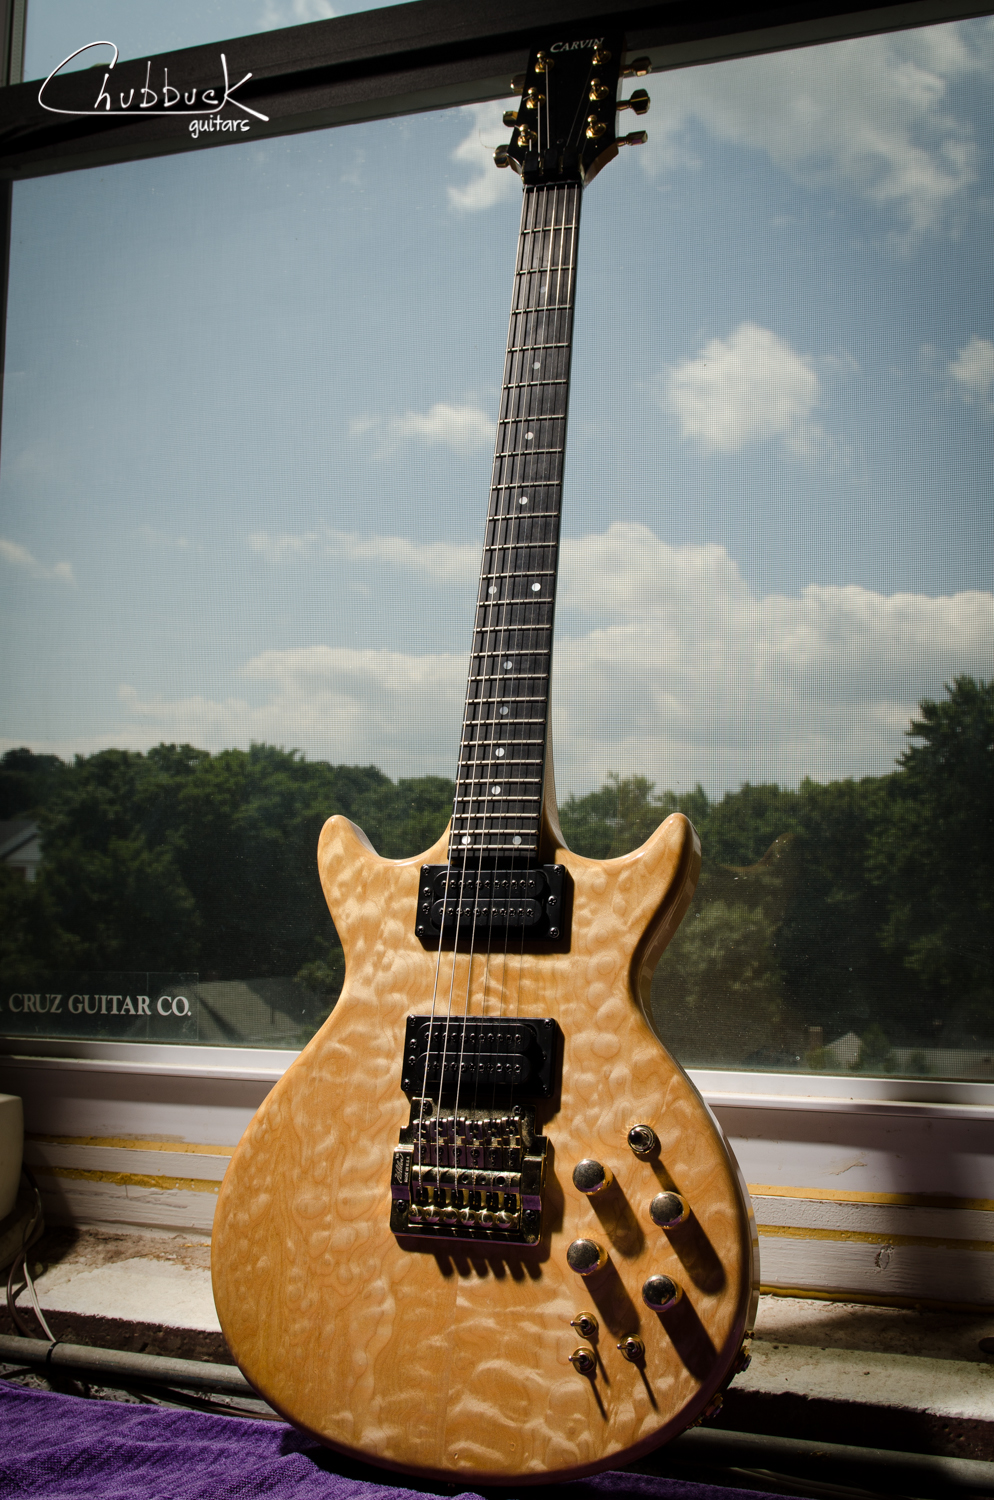 Solid two-piece quilted maple body.